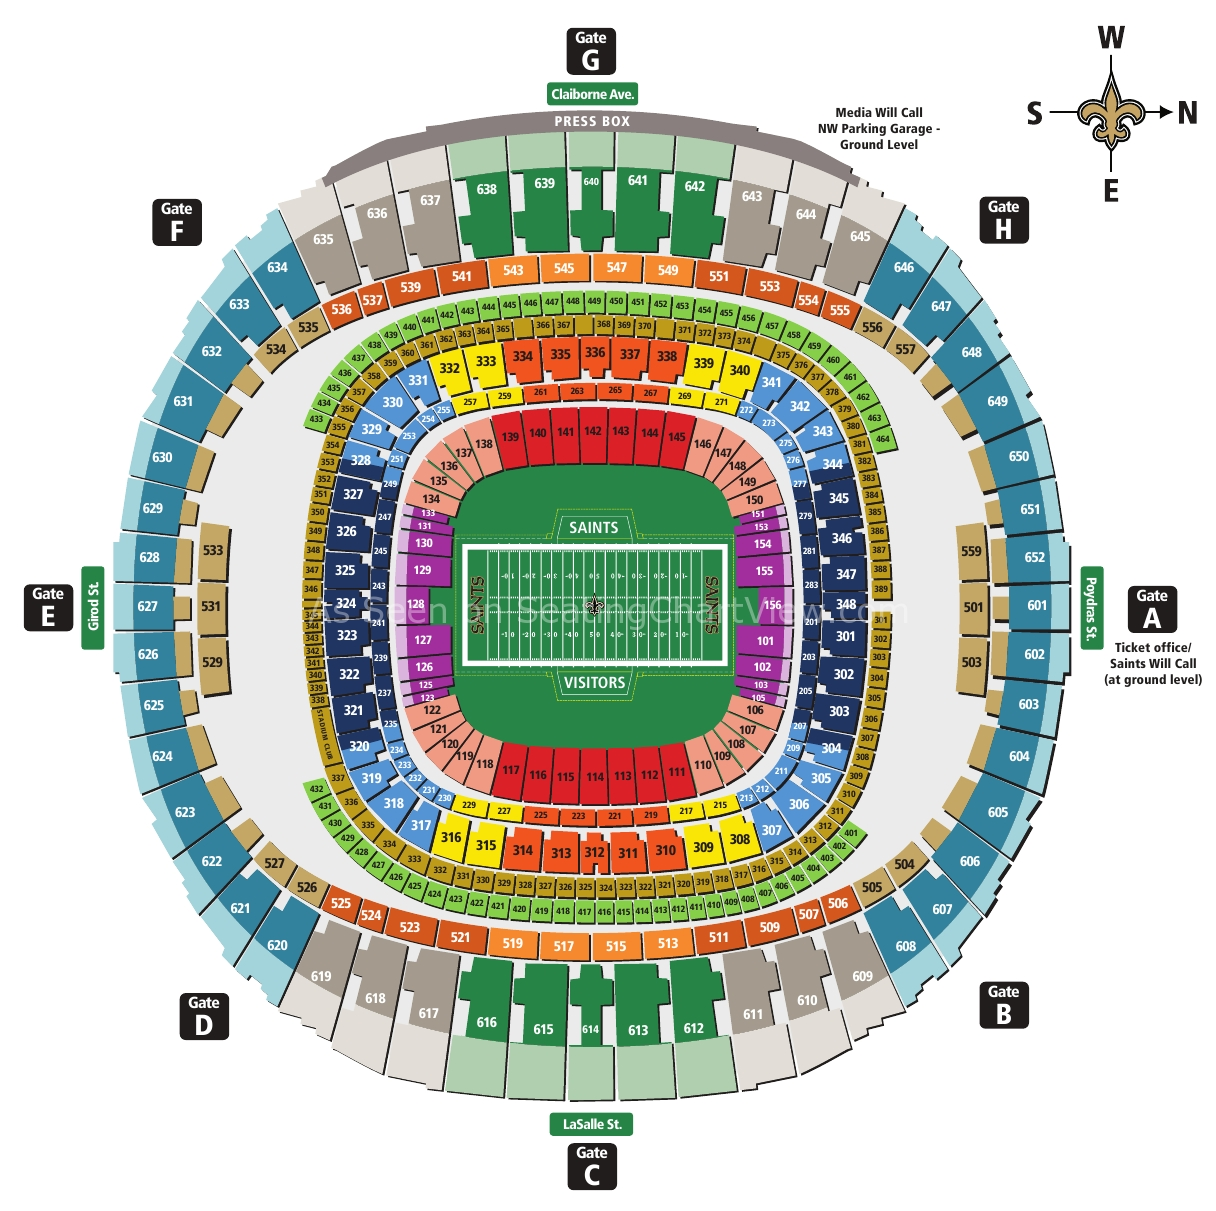 Mercedes-Benz Superdome, New Orleans La | Seating Chart View intended for New Orleans Super Bowl Seating Chart